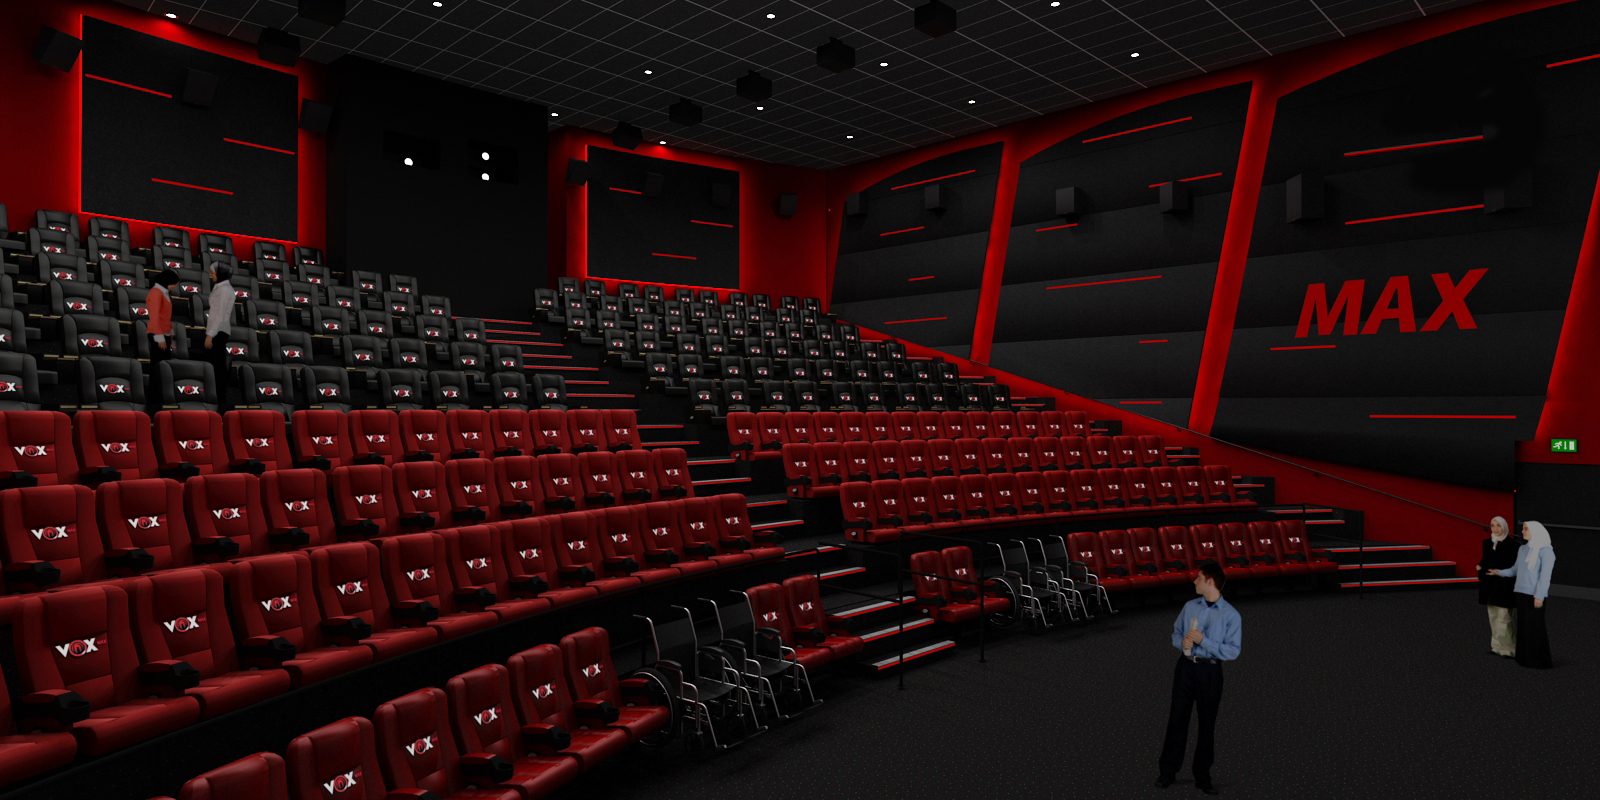 14 new cinema screens boutique cinema for kids open in